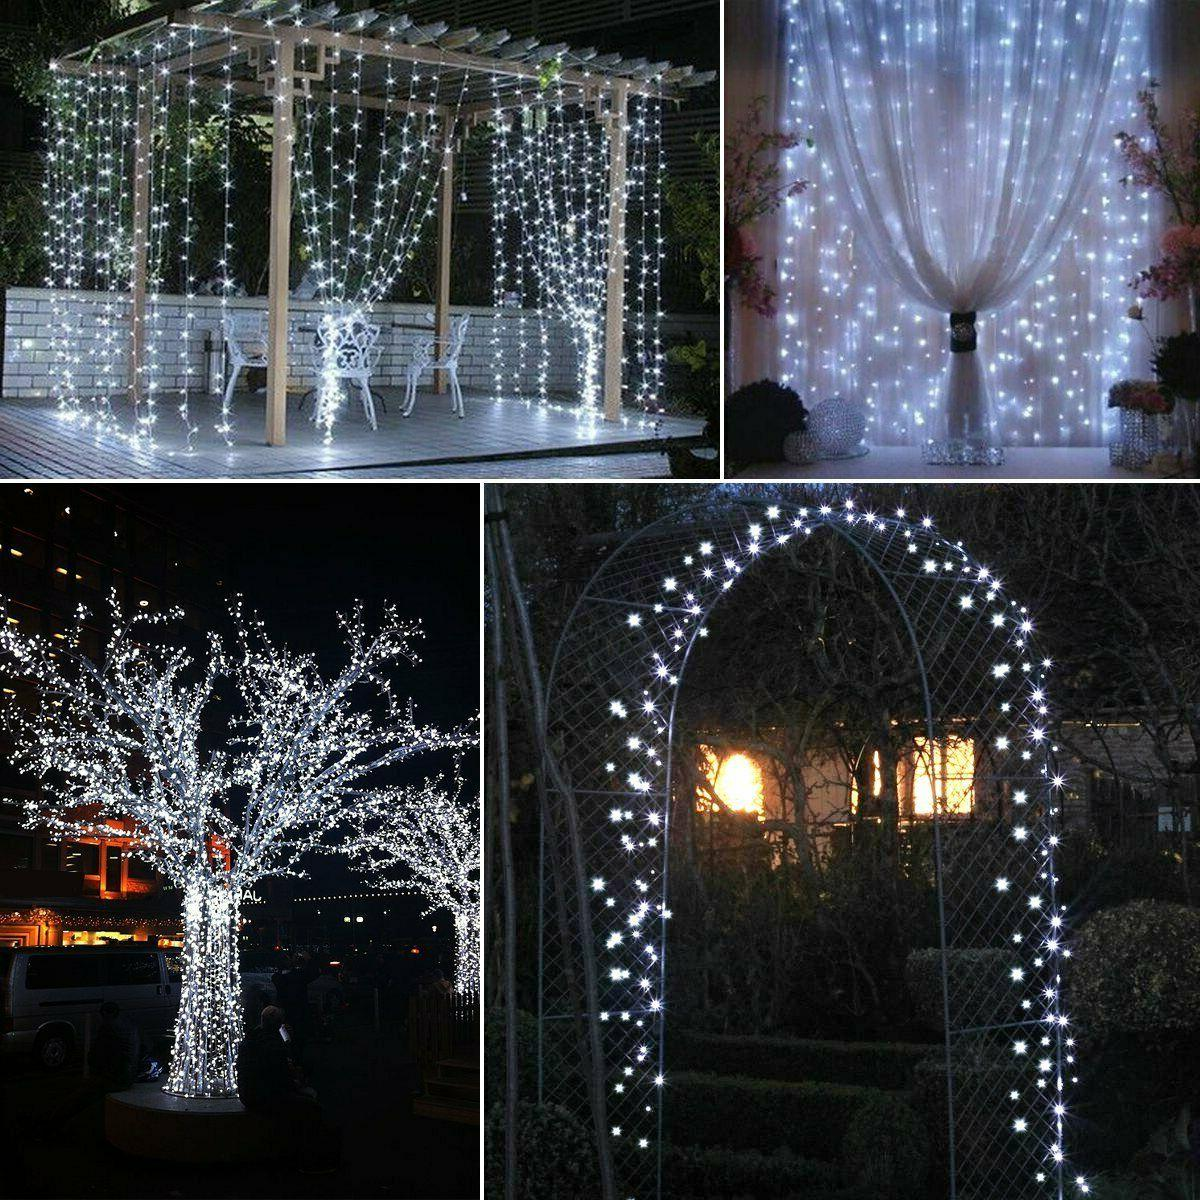 100-200 LED Fairy Lights Lamp Party Outdoor